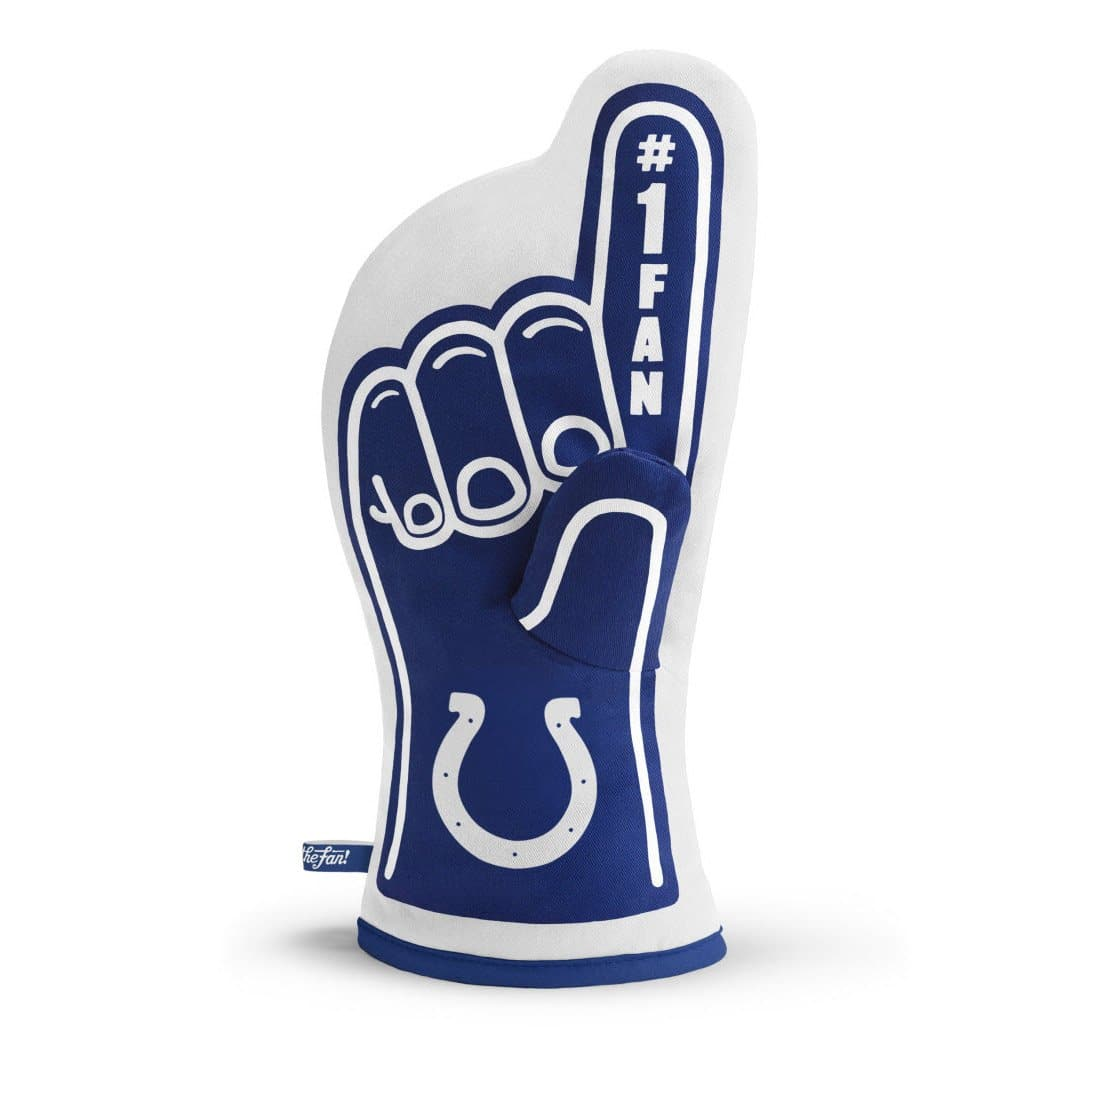 NFL Team Logo #1 Fan Finger Oven Mitts